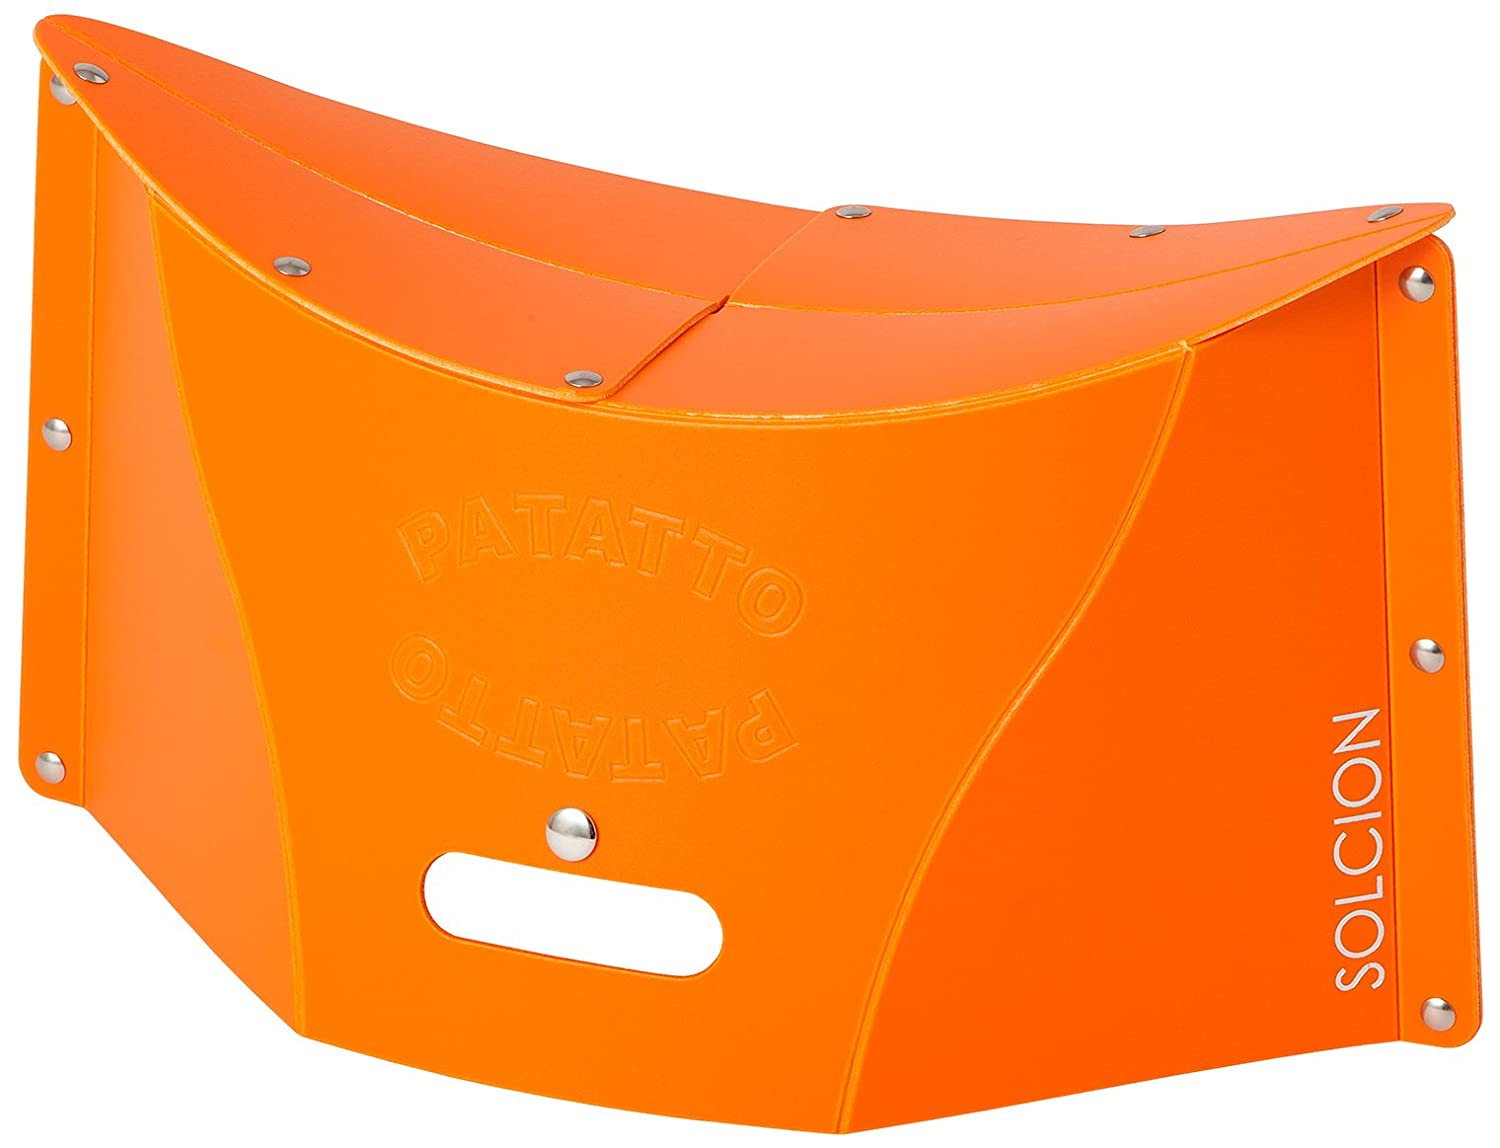 SOLCION Klappstühle patatto (patatto) Höhe 20 cm Orange pt012